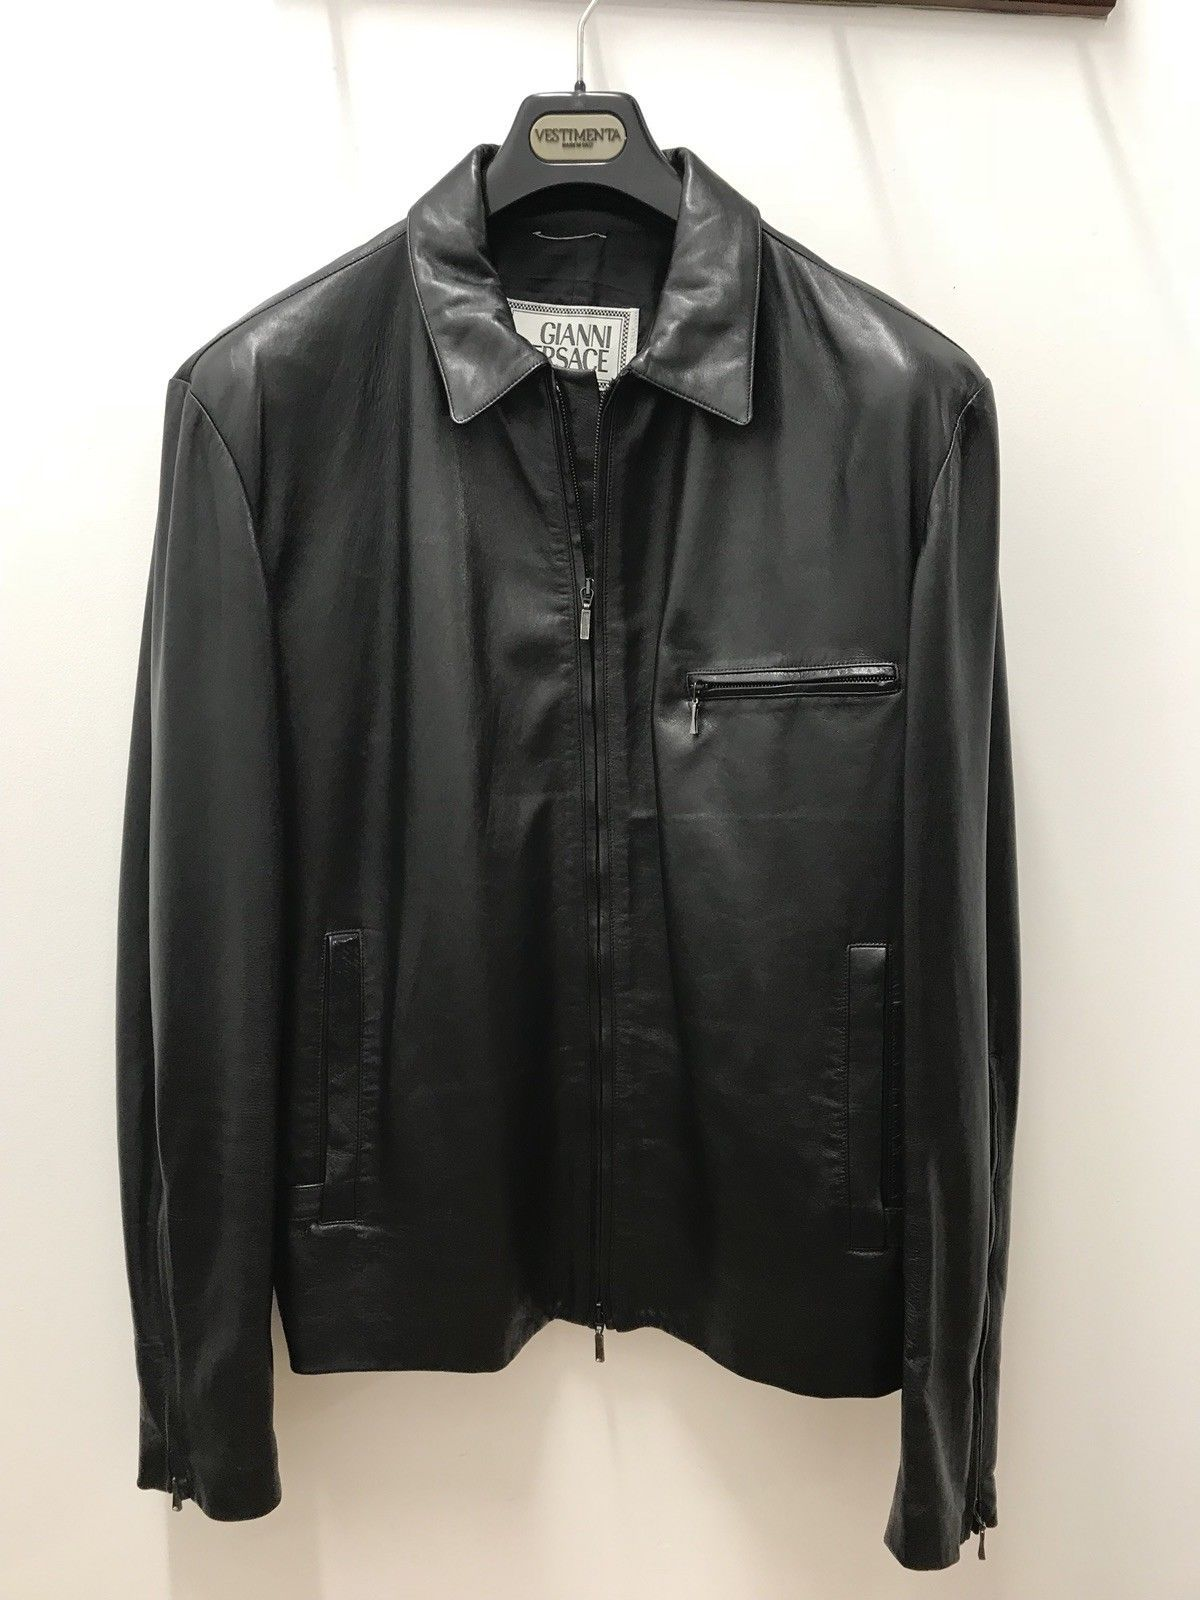 600.00 Gianni Versace Mint Condition Leather Jacket